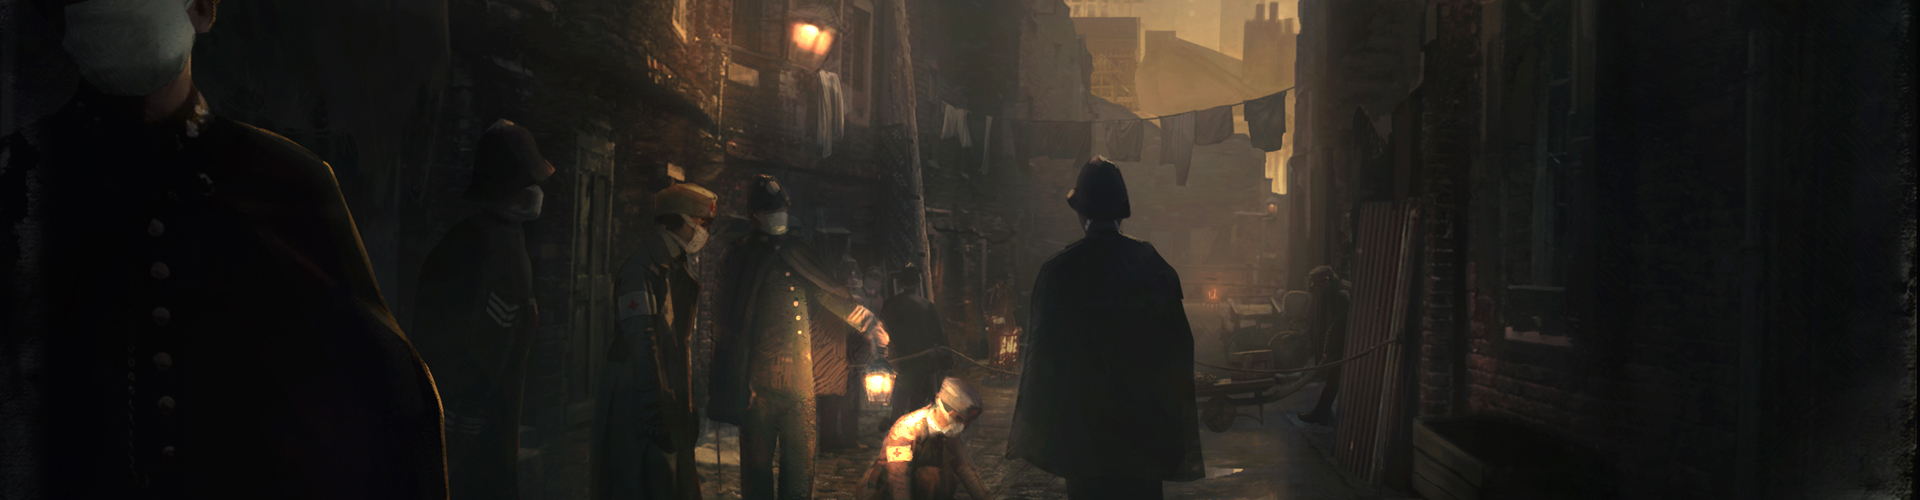 Vampyr Vorschau mit Video: Action-RPG der Life is Strange-Macher